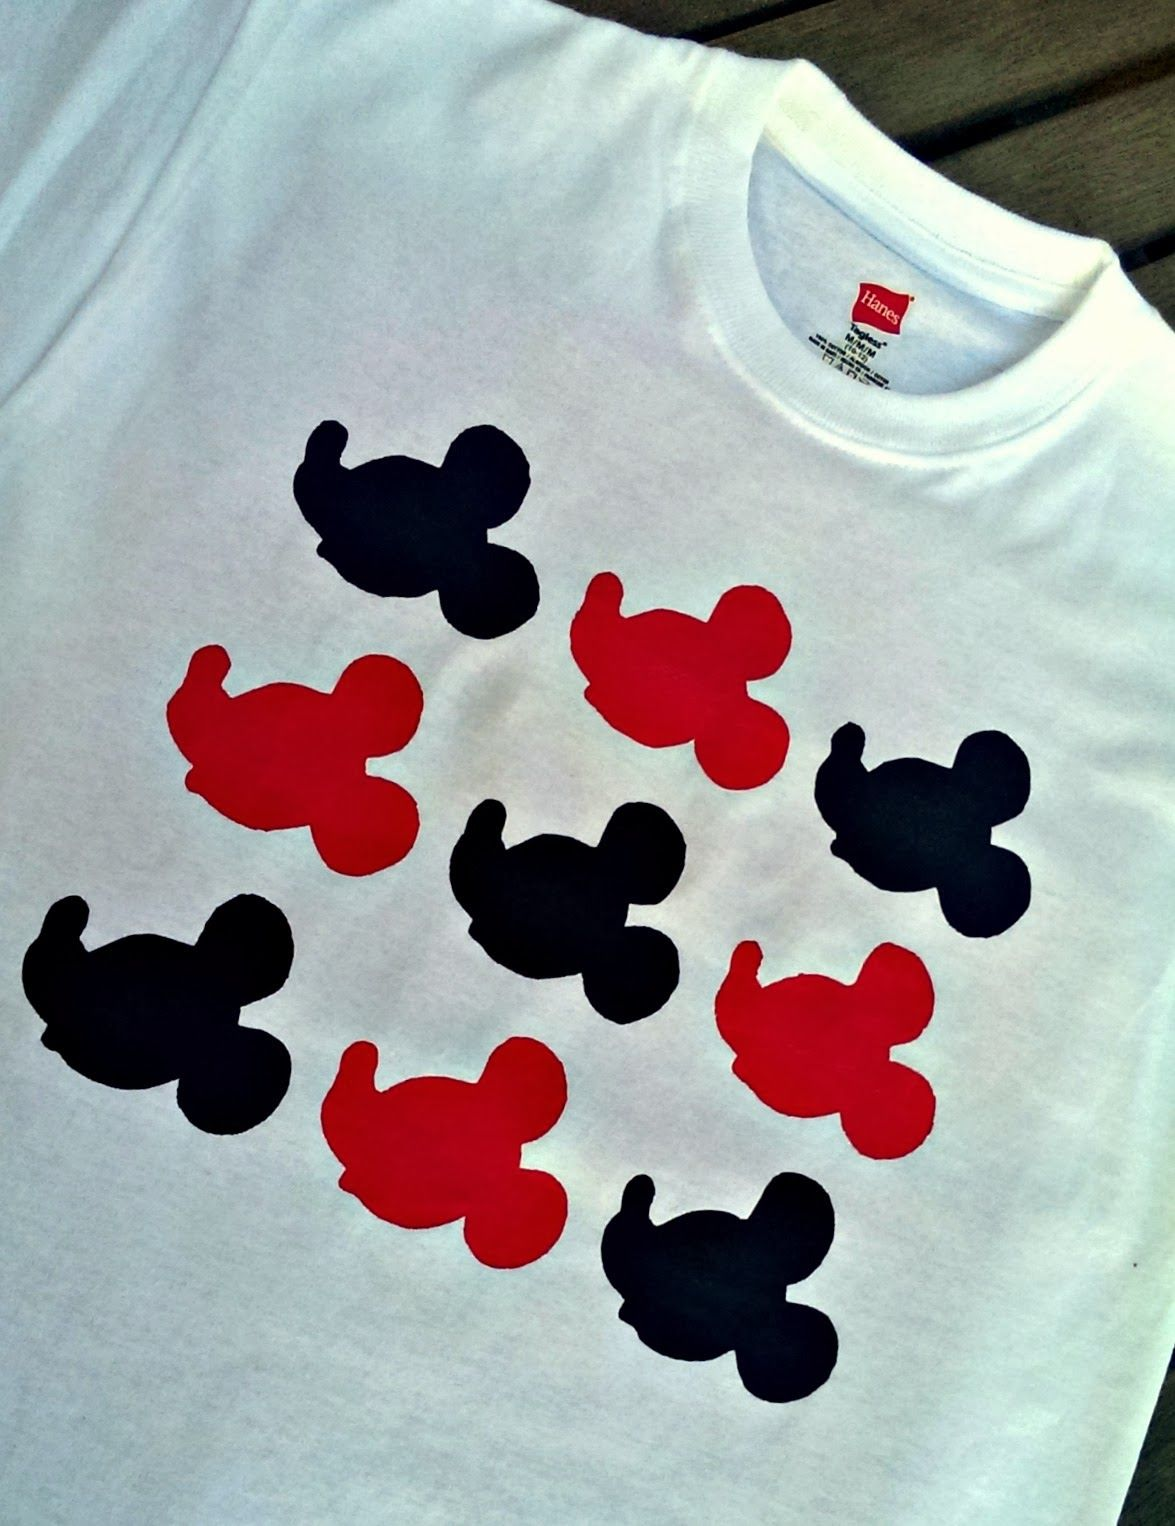 30c24c4d7 How to paint a Mickey Mouse t-shirt using freezer paper stencil shirts